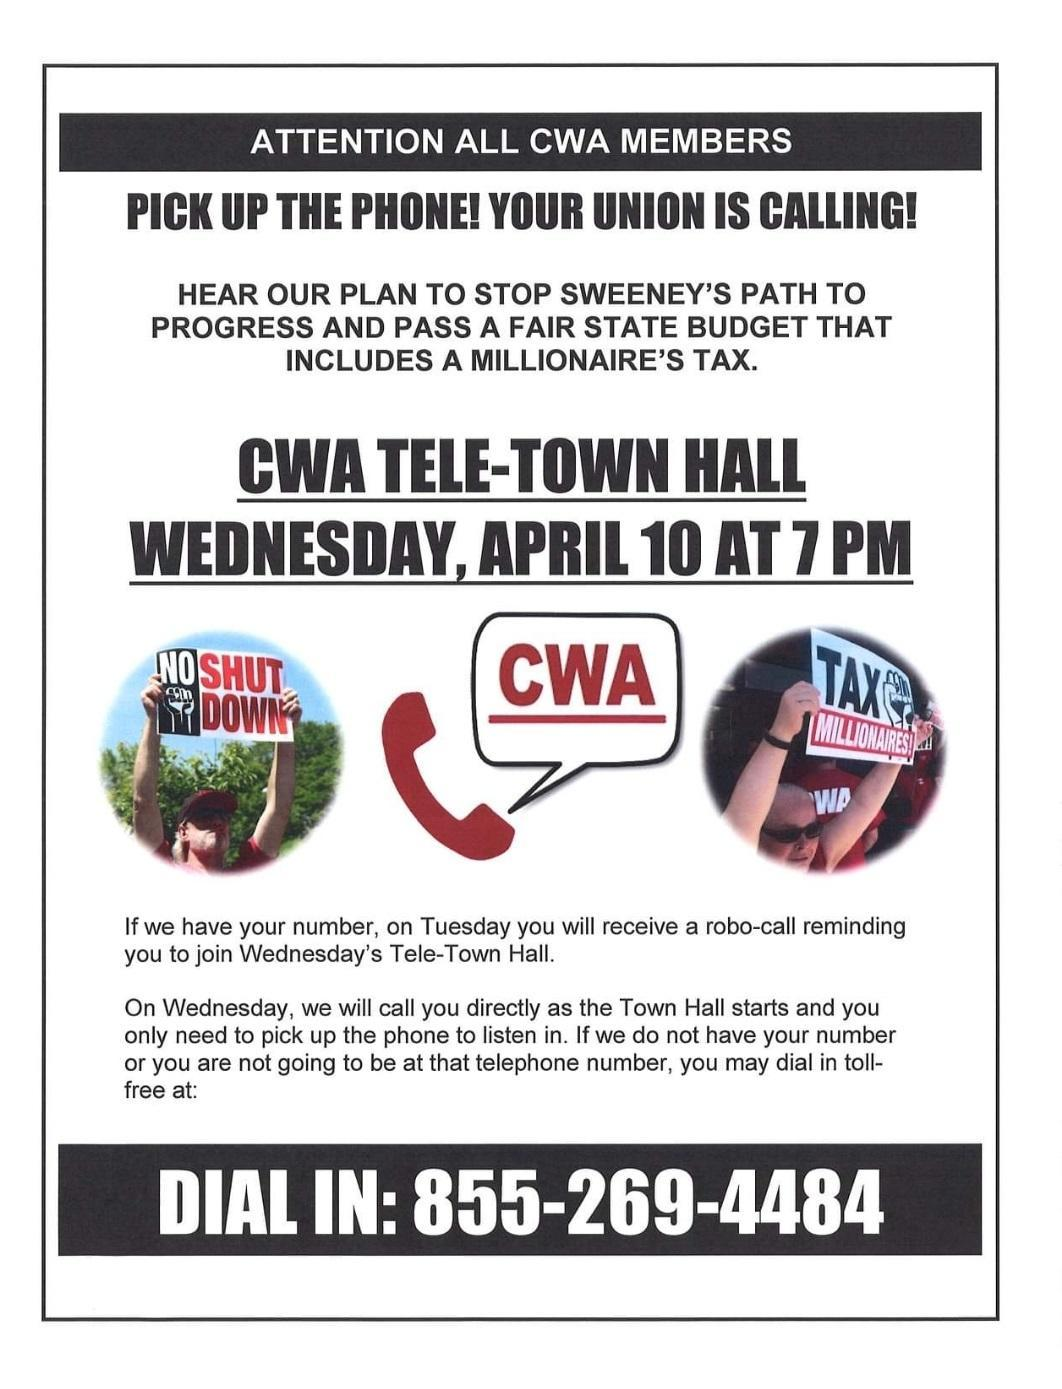 Tele-town Call Hall: Wednesday, April 10 at 7 PM | CWA Local 1040